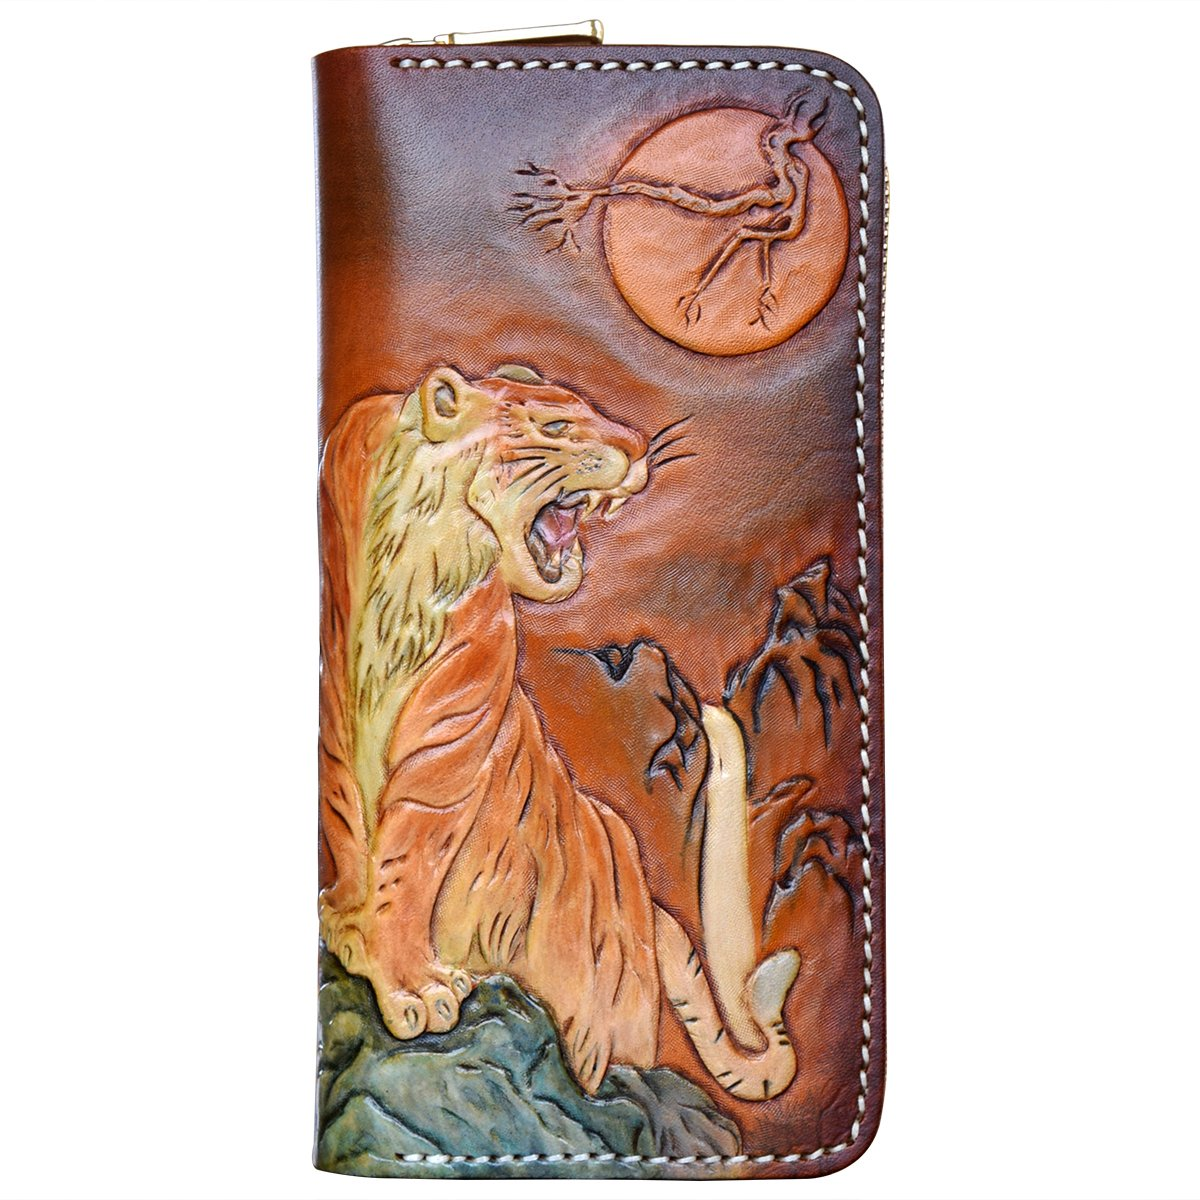 OLG.YAT Vegetable tanned leather Retro Genuine Leather Men's Wallets WLPDLH by OLG.YAT